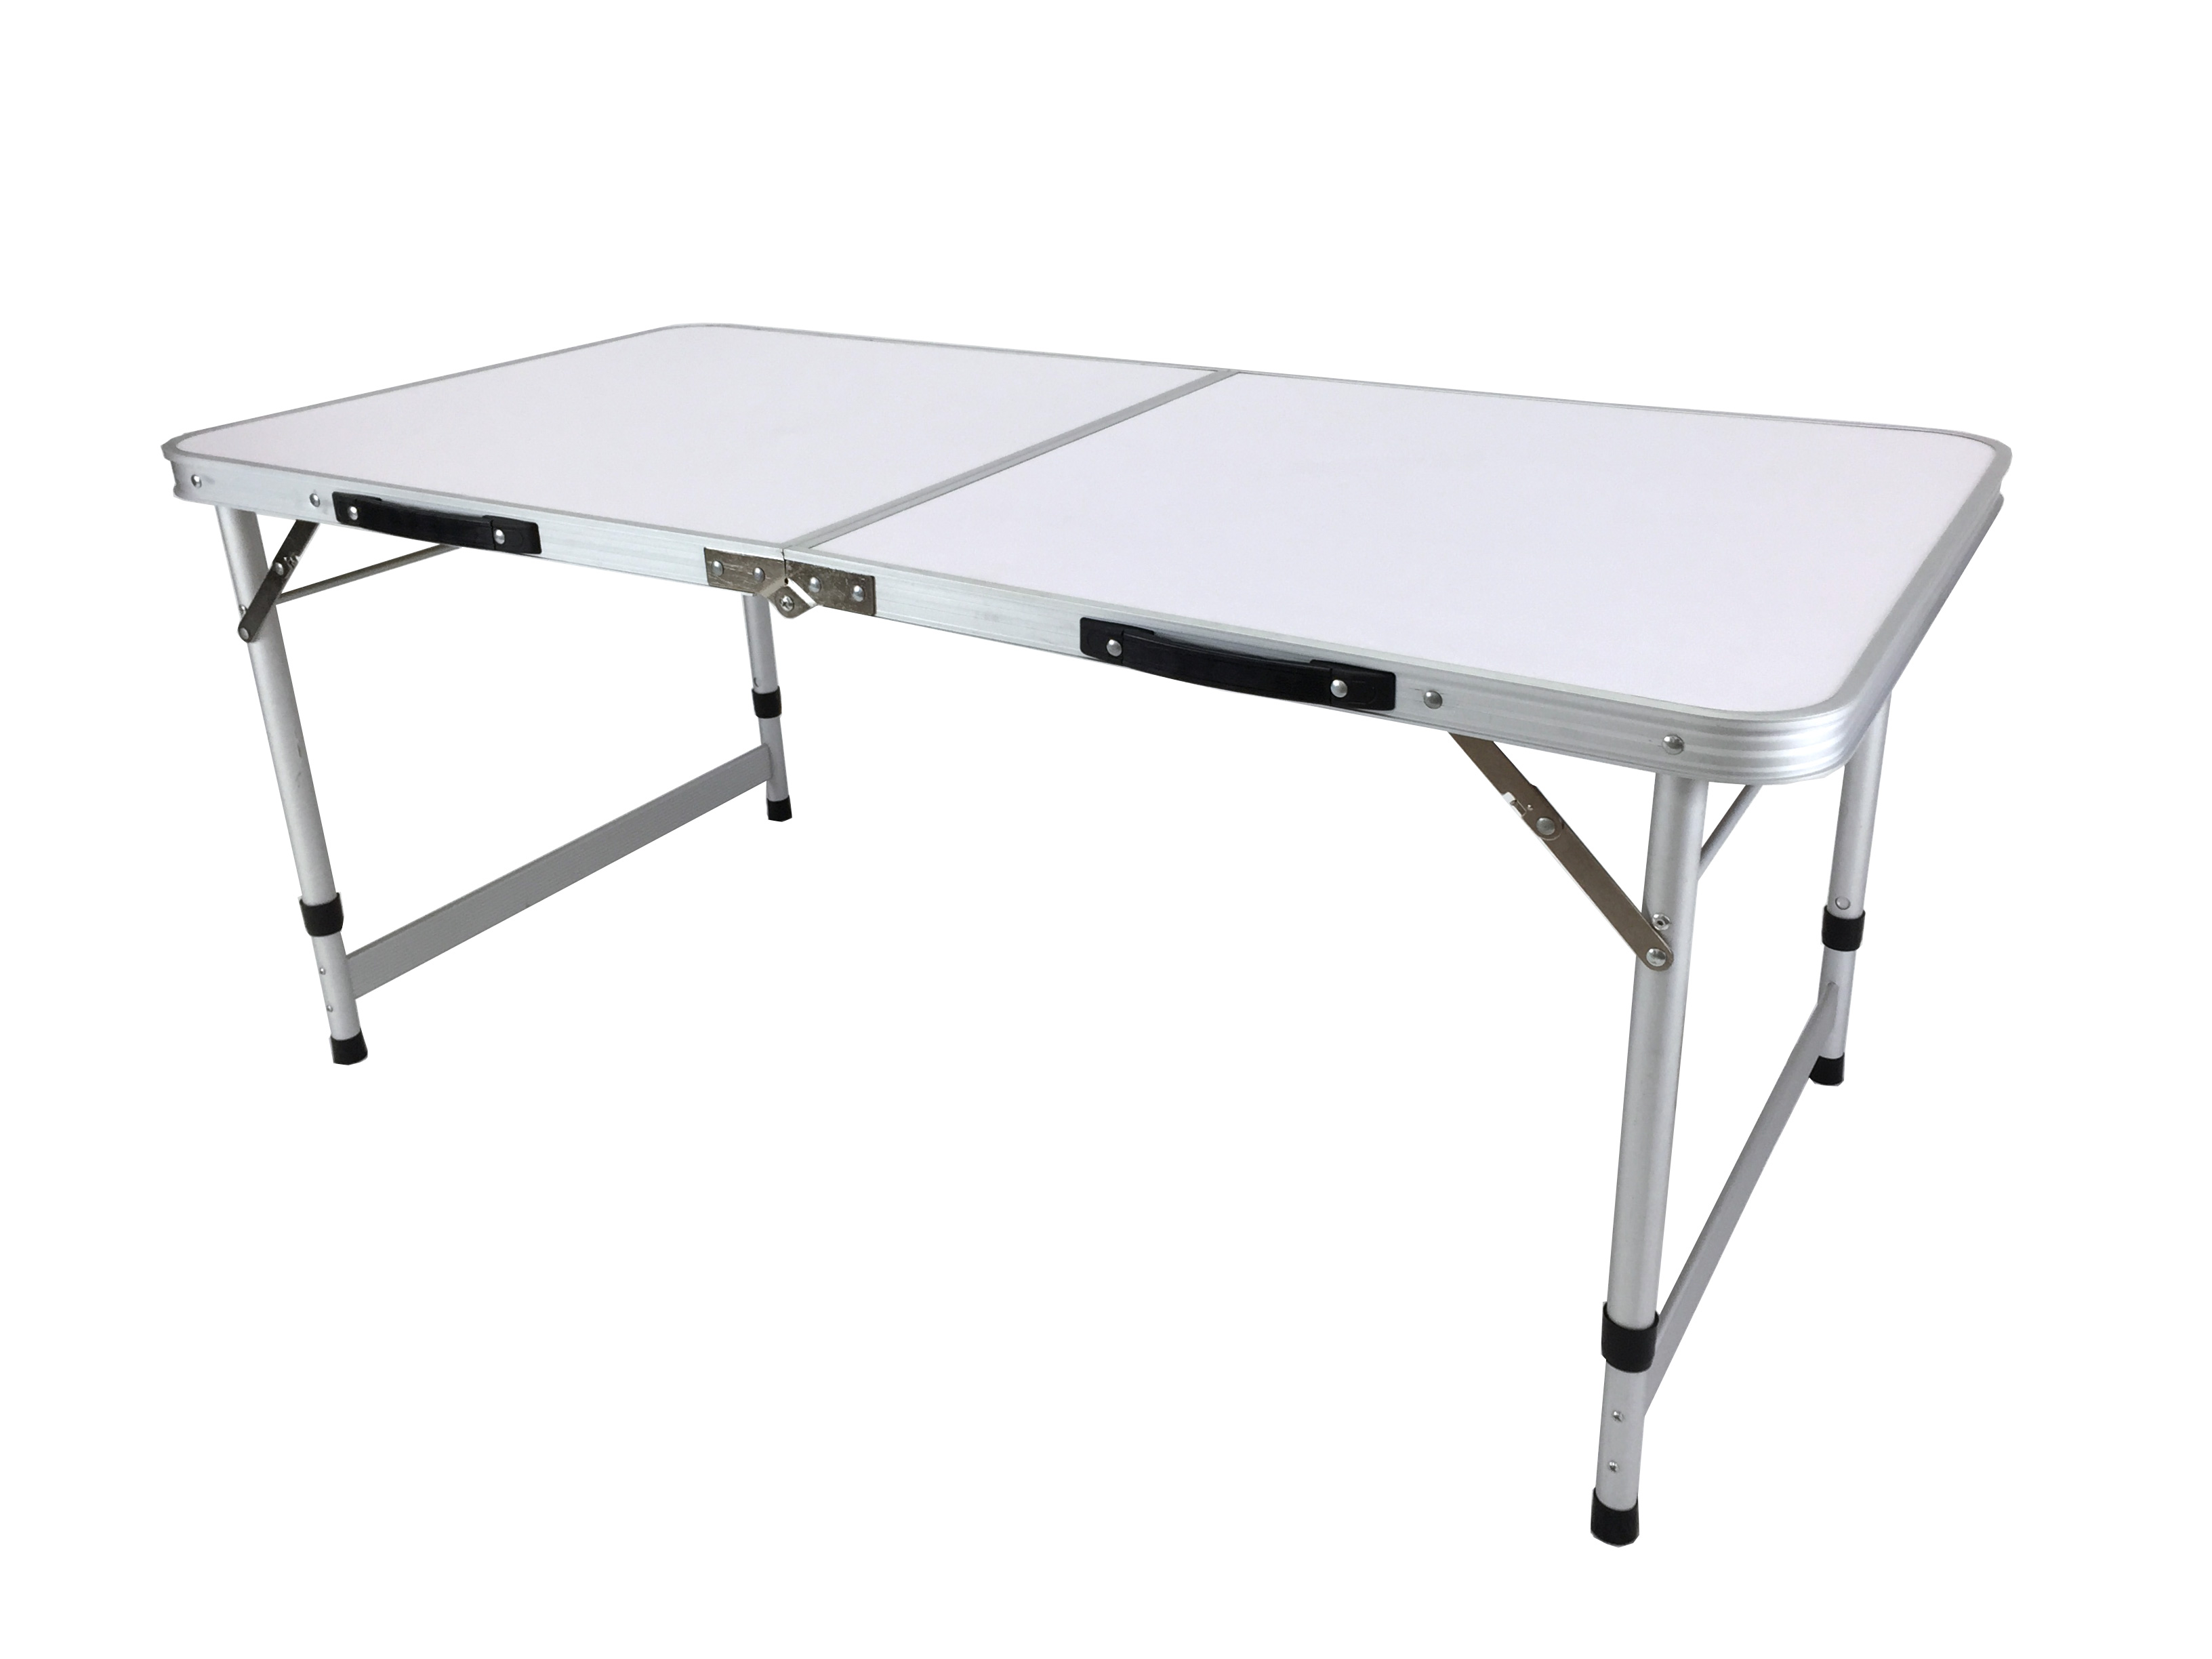 Aluminum Camping Folding Camp Table With Carrying Handle 4 Ft